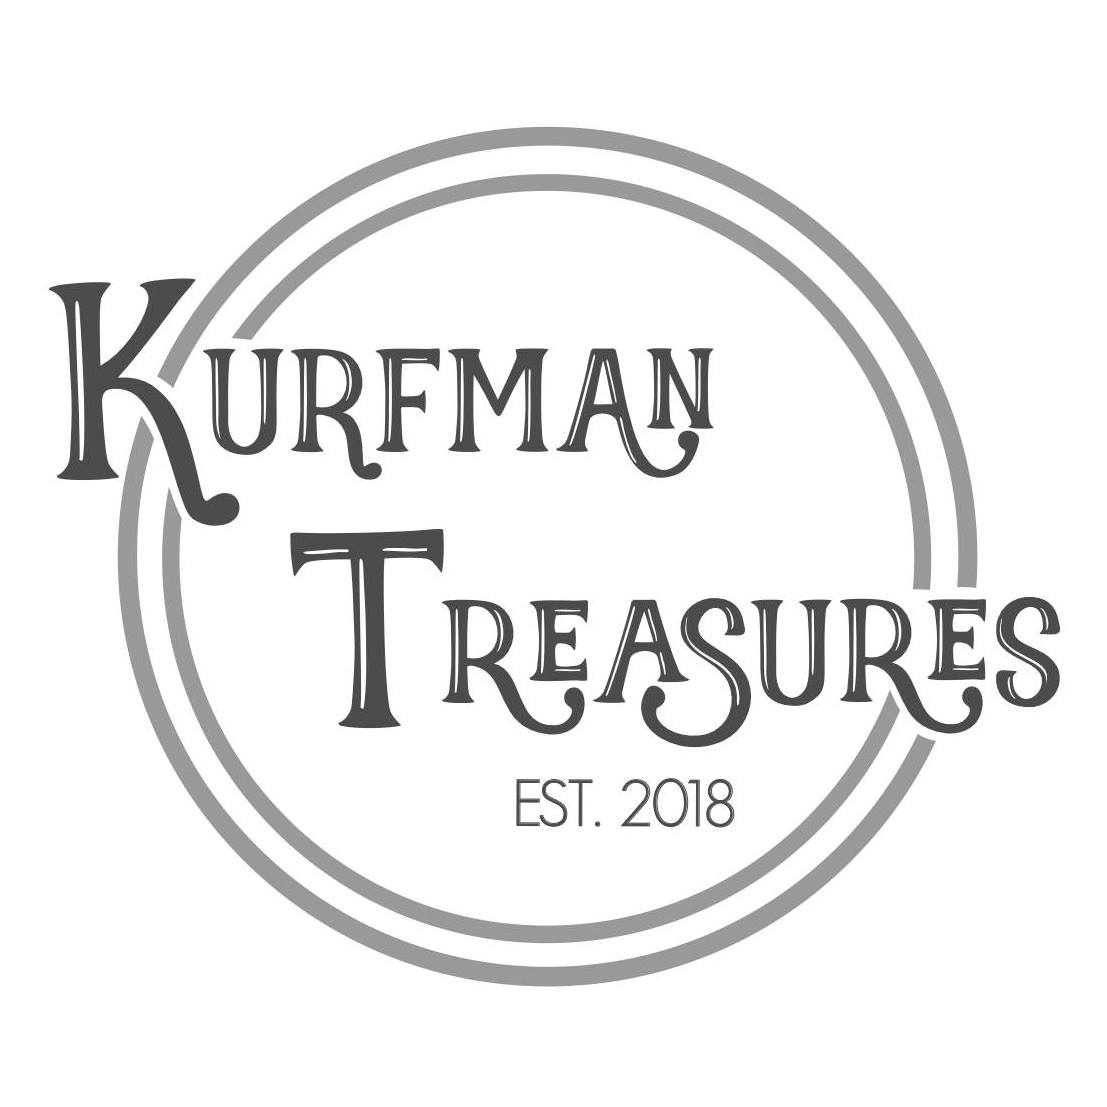 Kurfman Treasures image